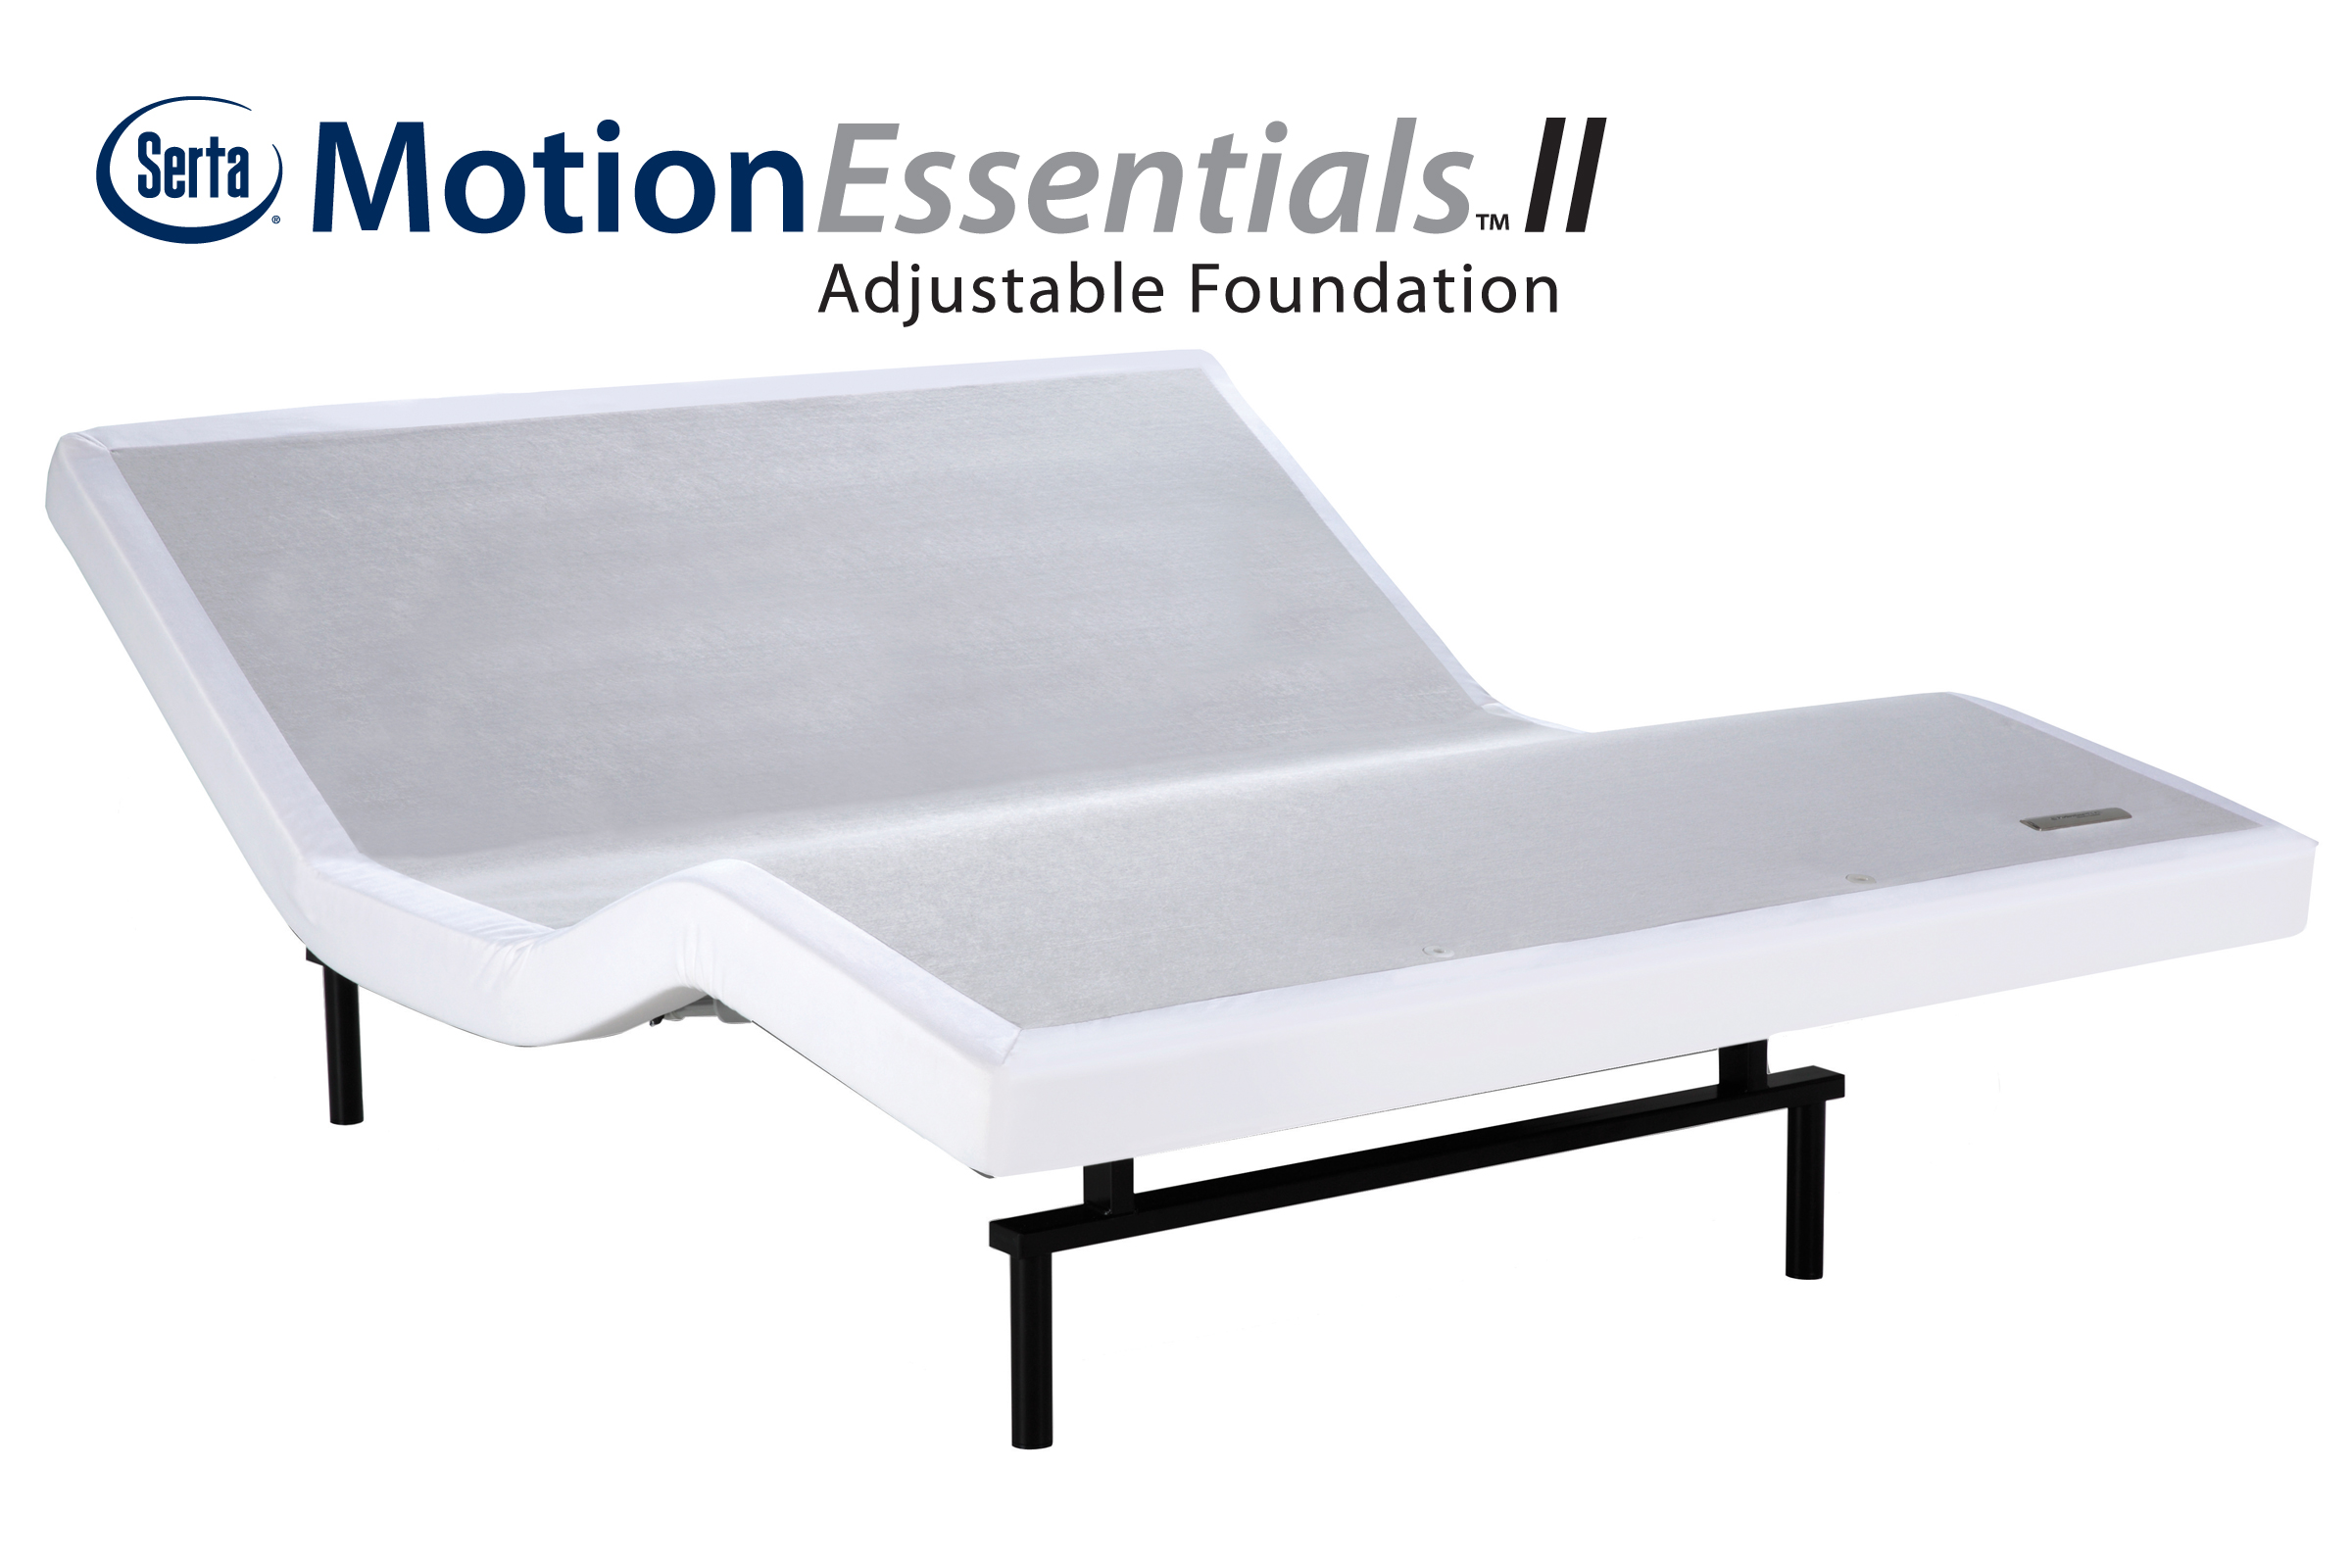 Mattress retainer bars for Serta Motion Essentials I or III adjustable beds